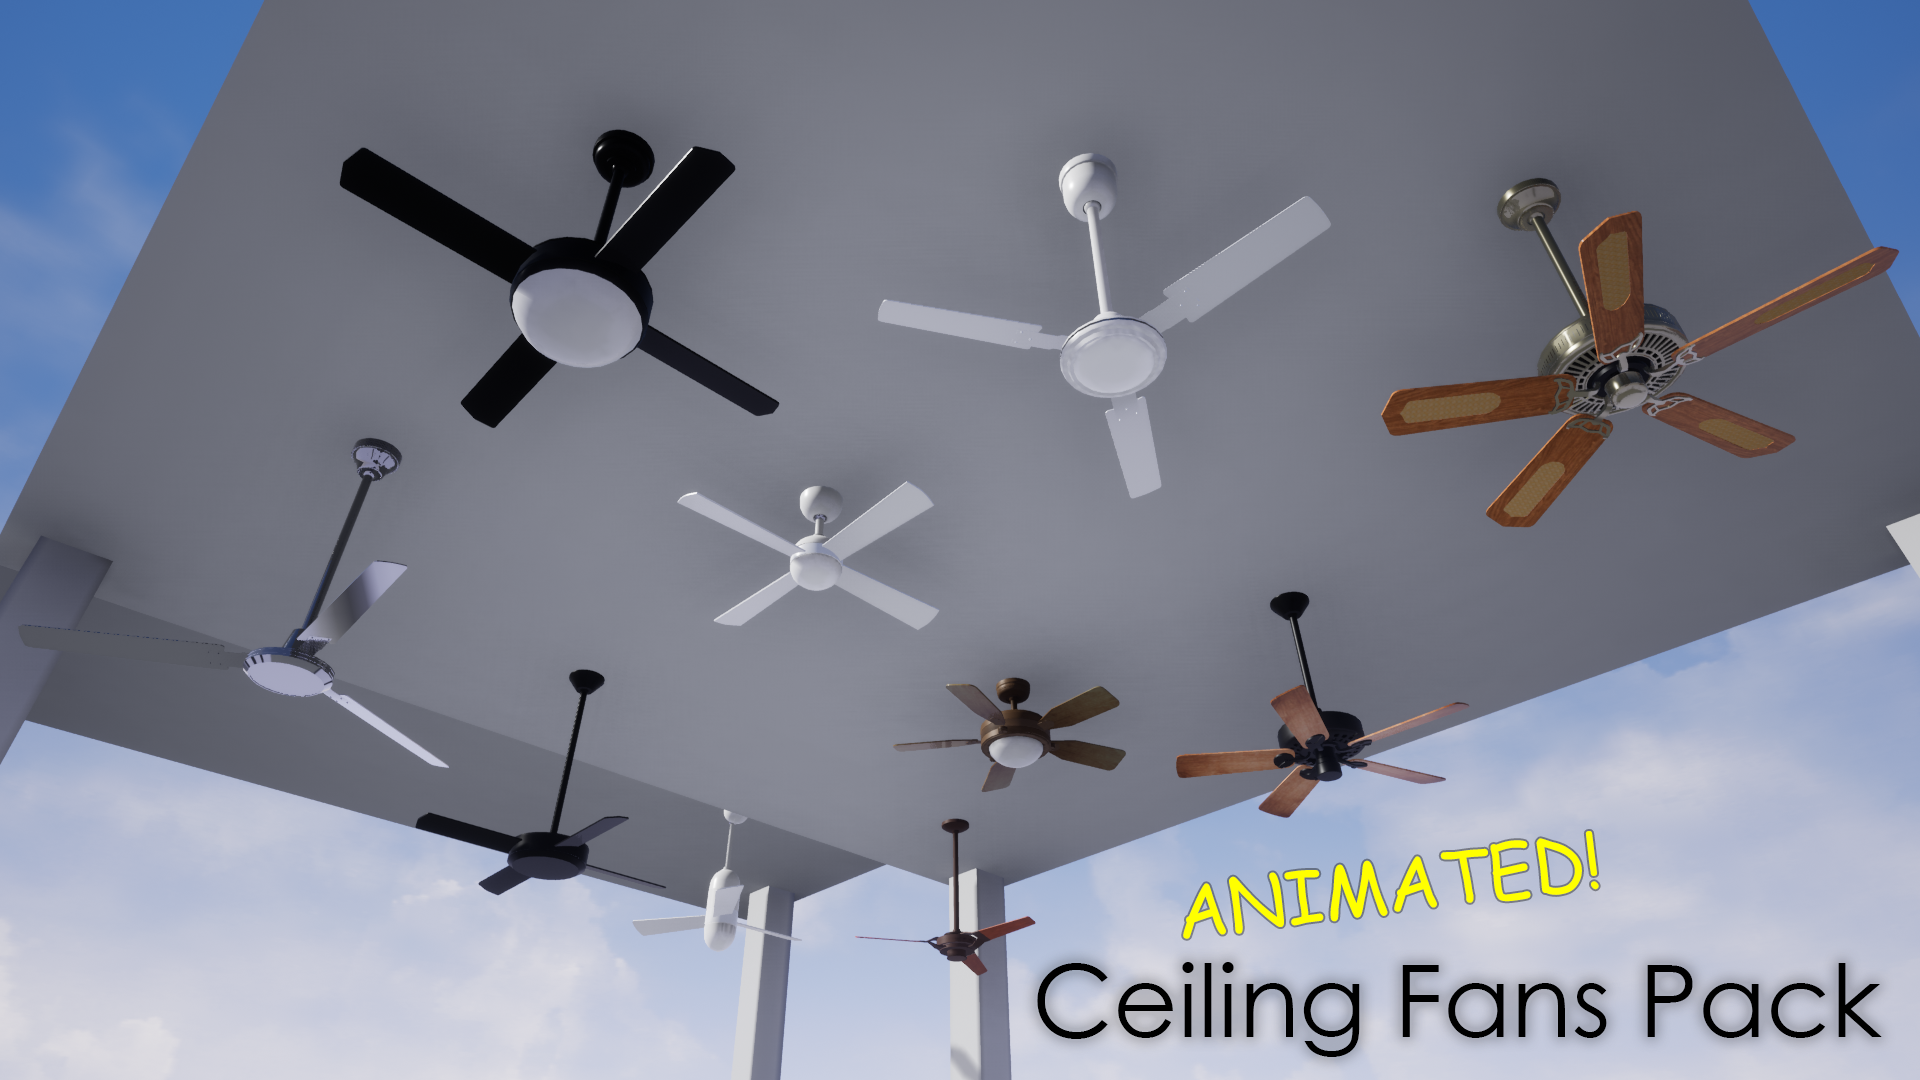 Ceiling Fans Pack - Now available!